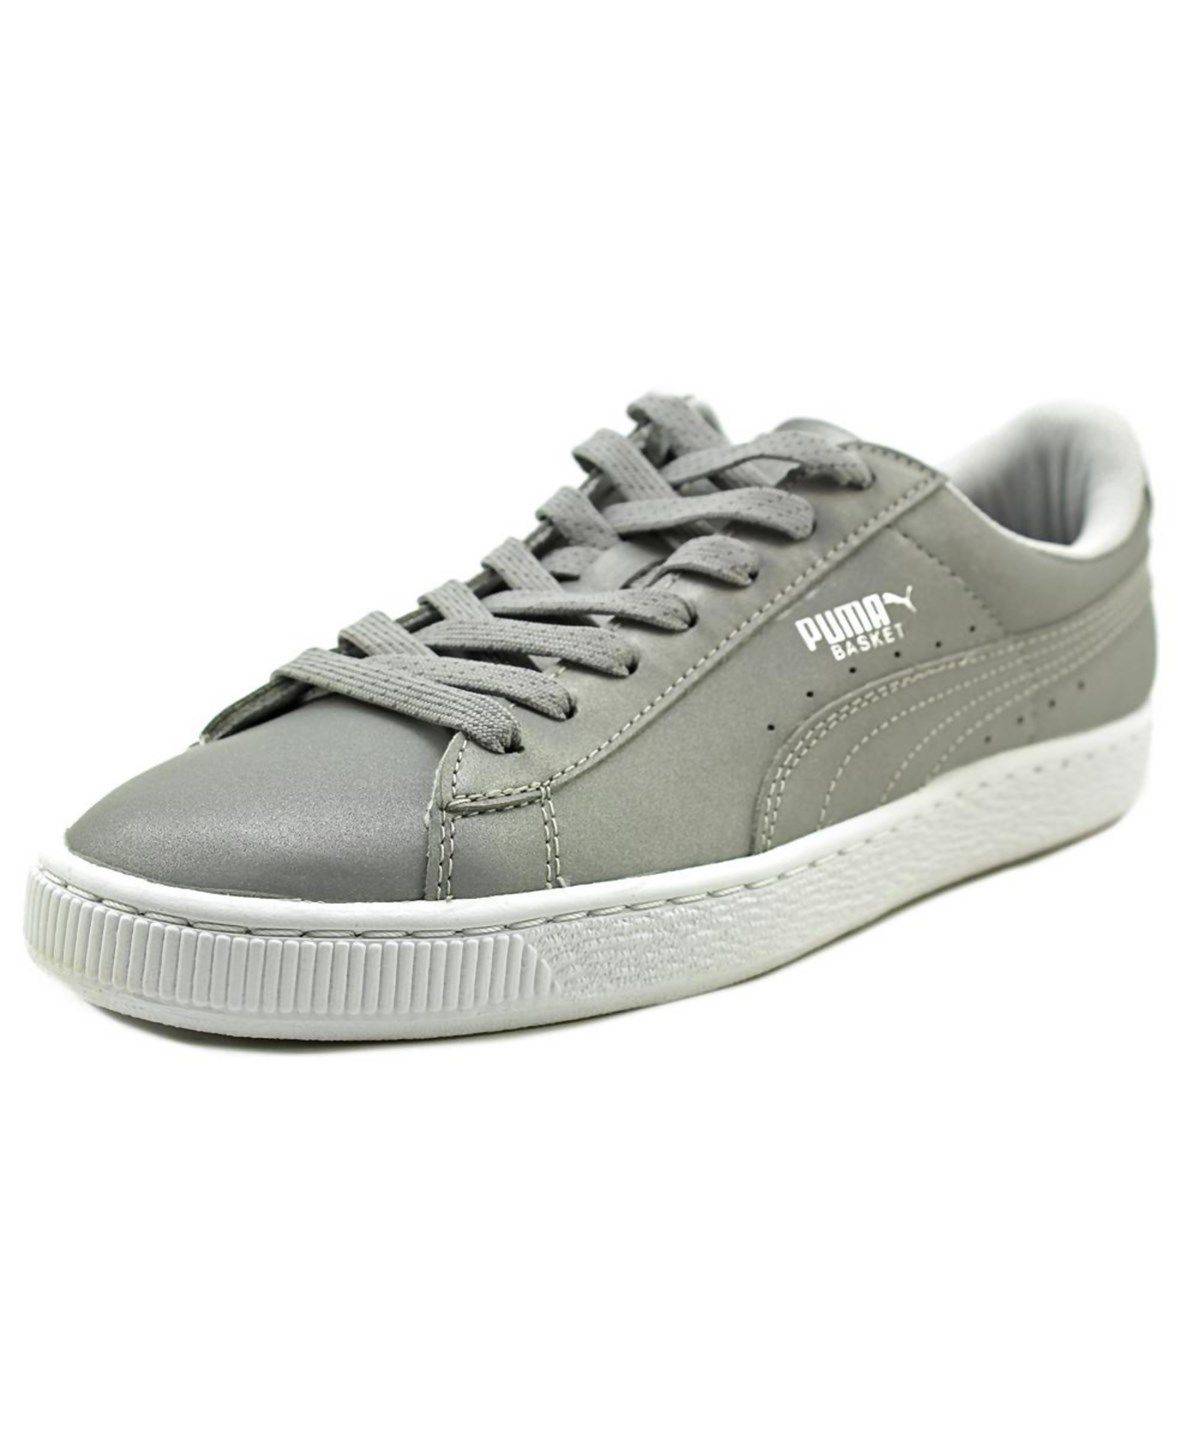 Stylish Puma Basket Reflective Round Toe Synthetic Gray Sneakers Grey For Men Sale